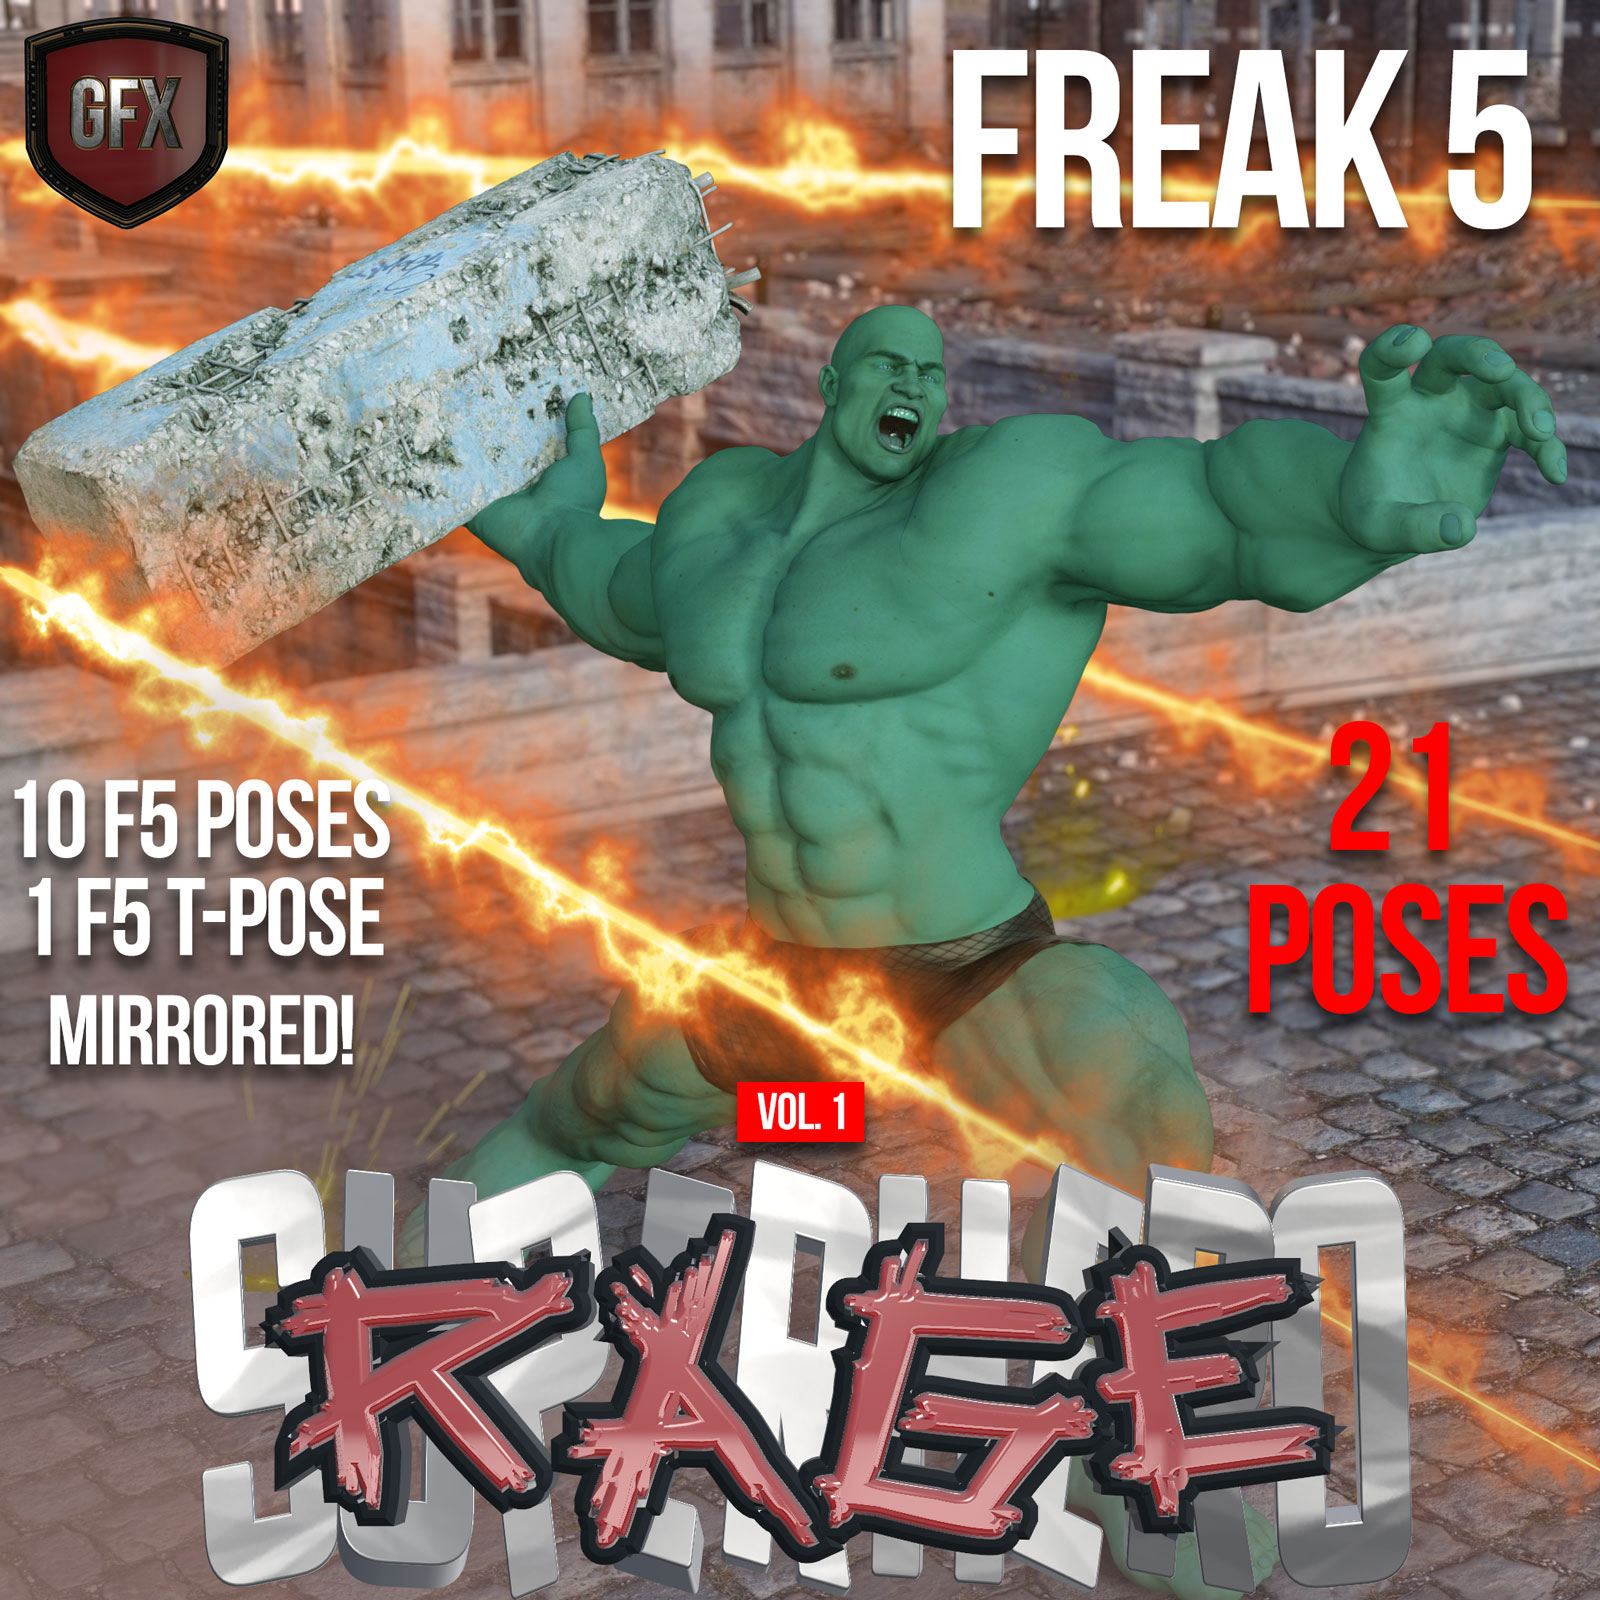 SuperHero Rage for Freak 5 Volume 1 by GriffinFX